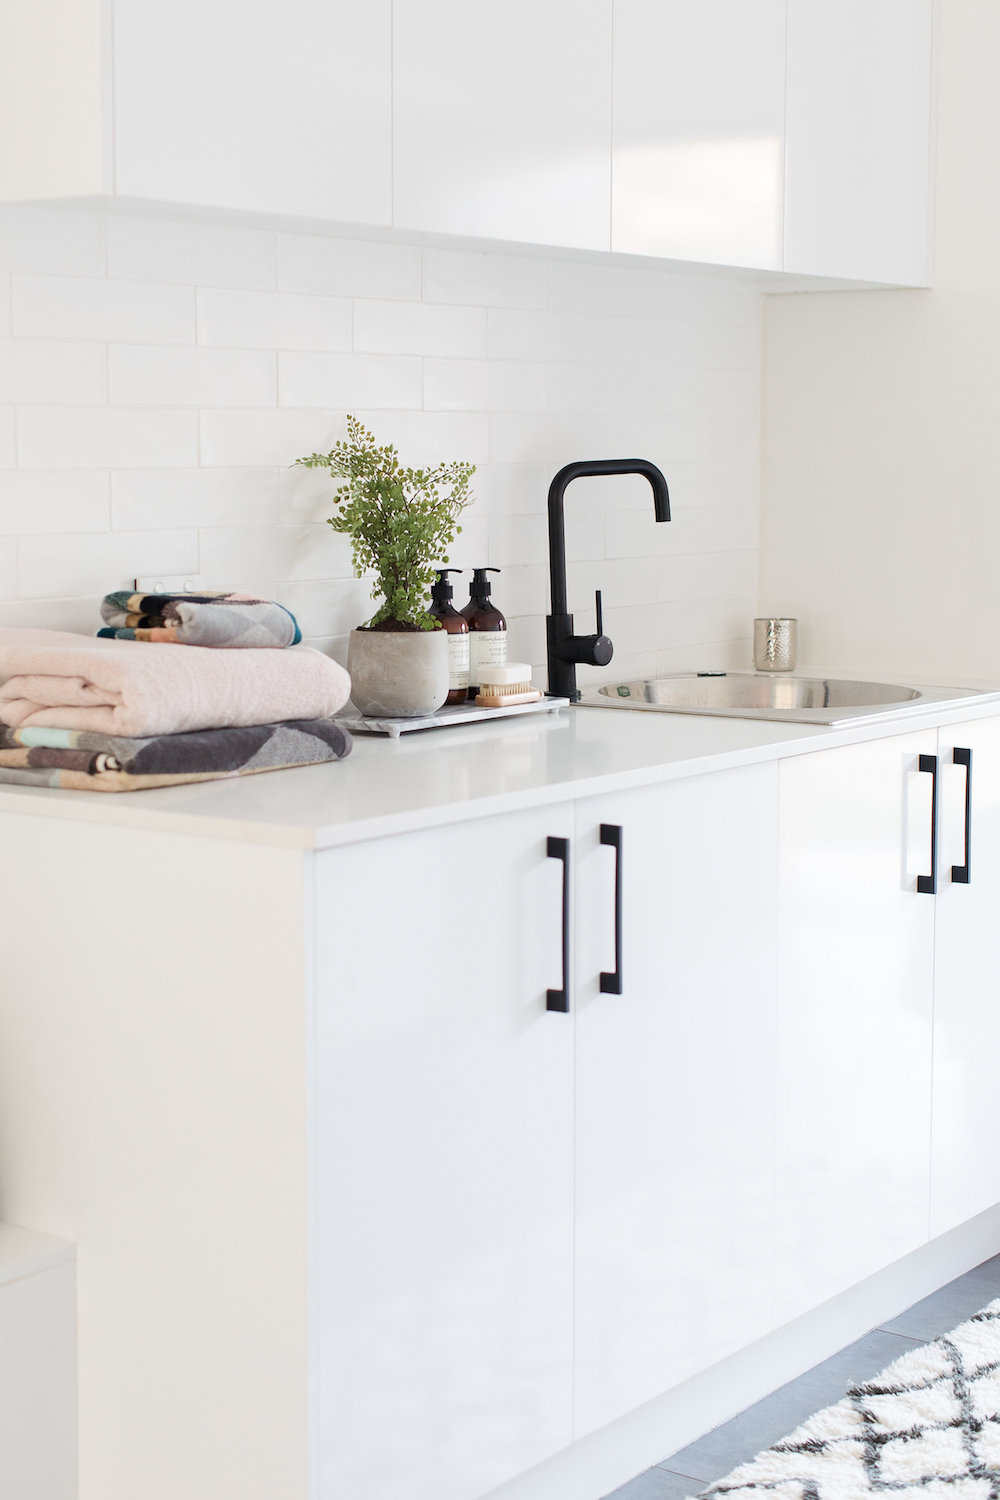 10 Tips On How To Style Your Laundry Beautiful Laundry Decor